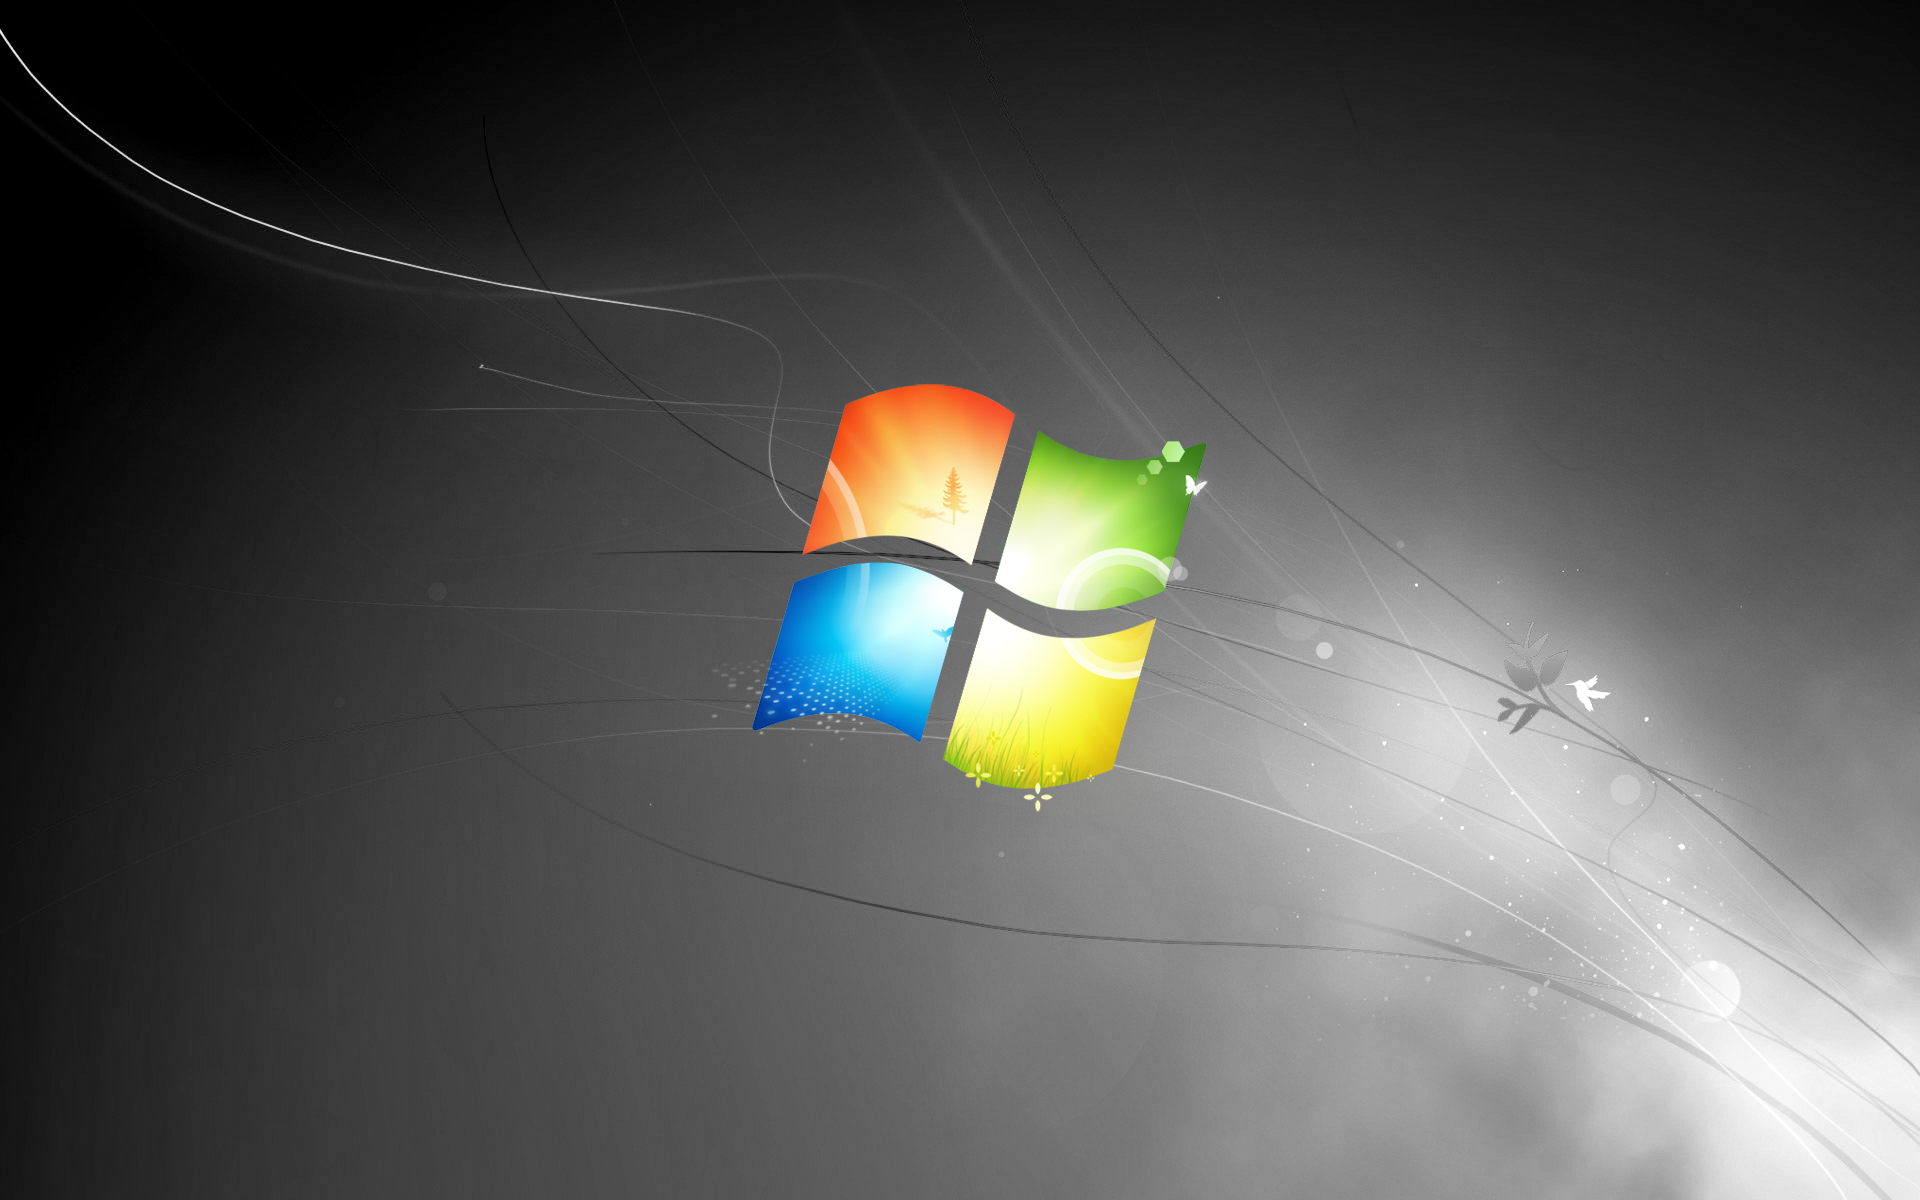 Windows 7 Black wallpaper 44968 1920x1200